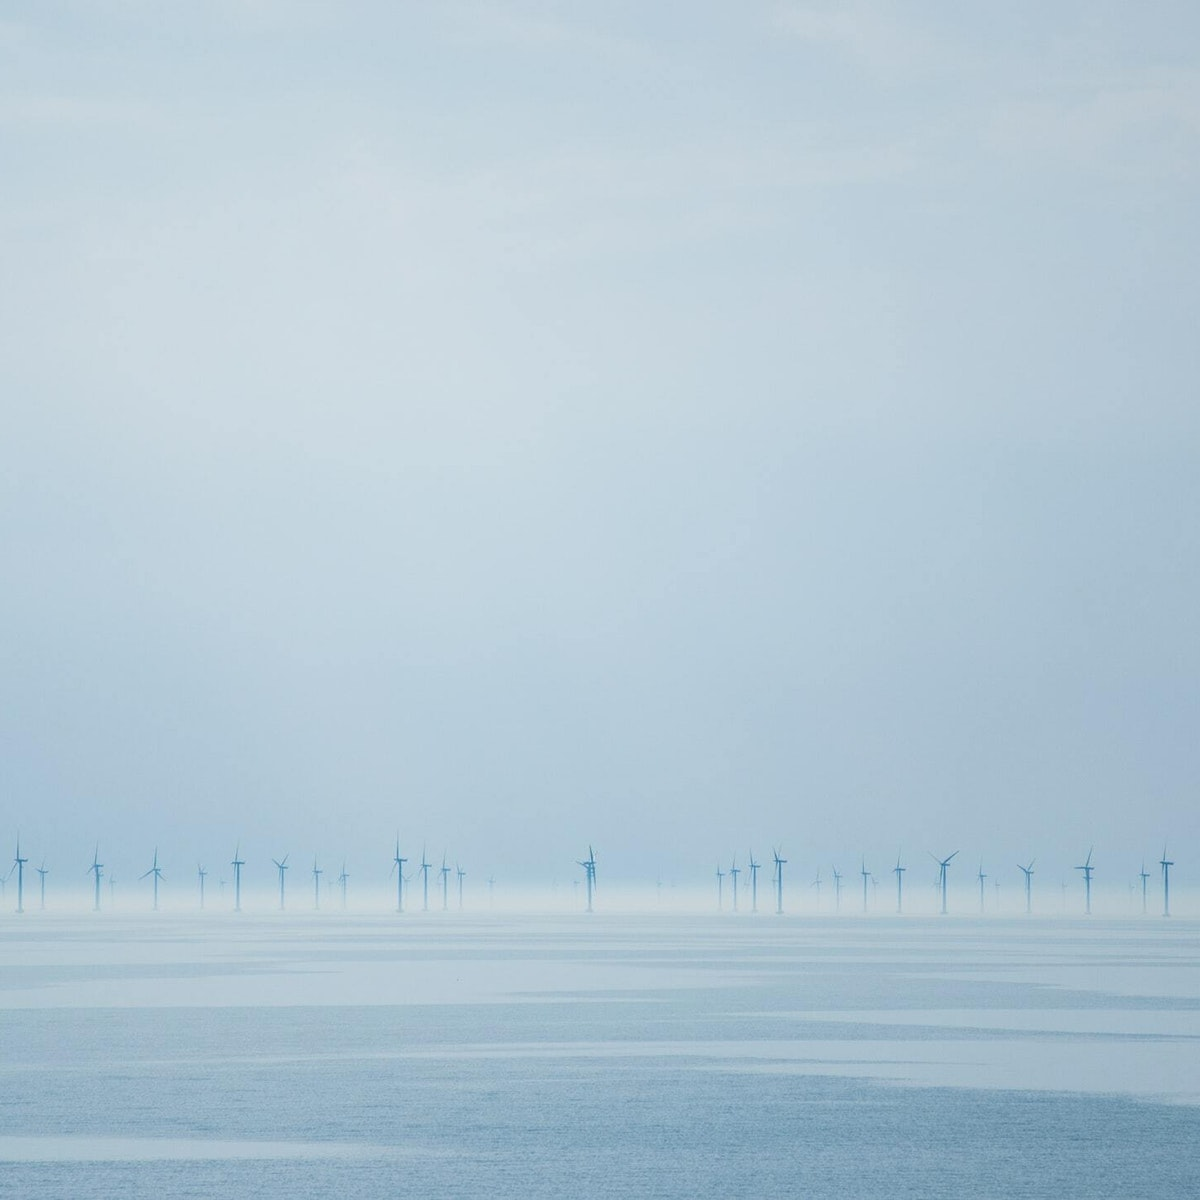 Offshore wind is becoming more competitive